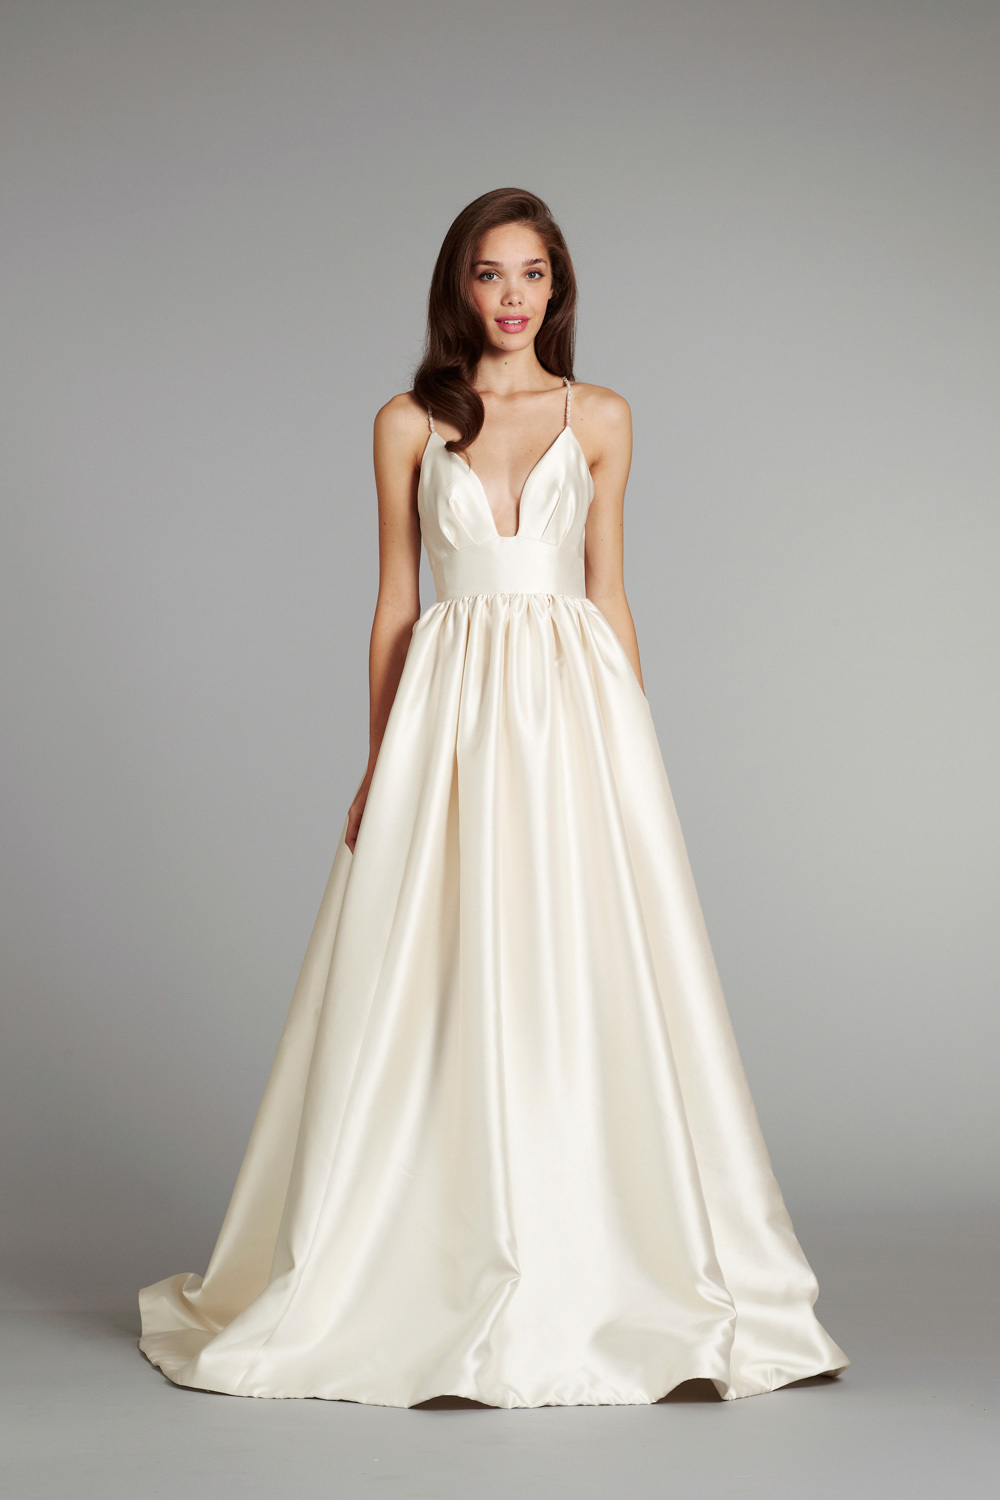 Bridal-gown-wedding-dress-jlm-hayley-paige-blush-fall-2012-maple-front.full